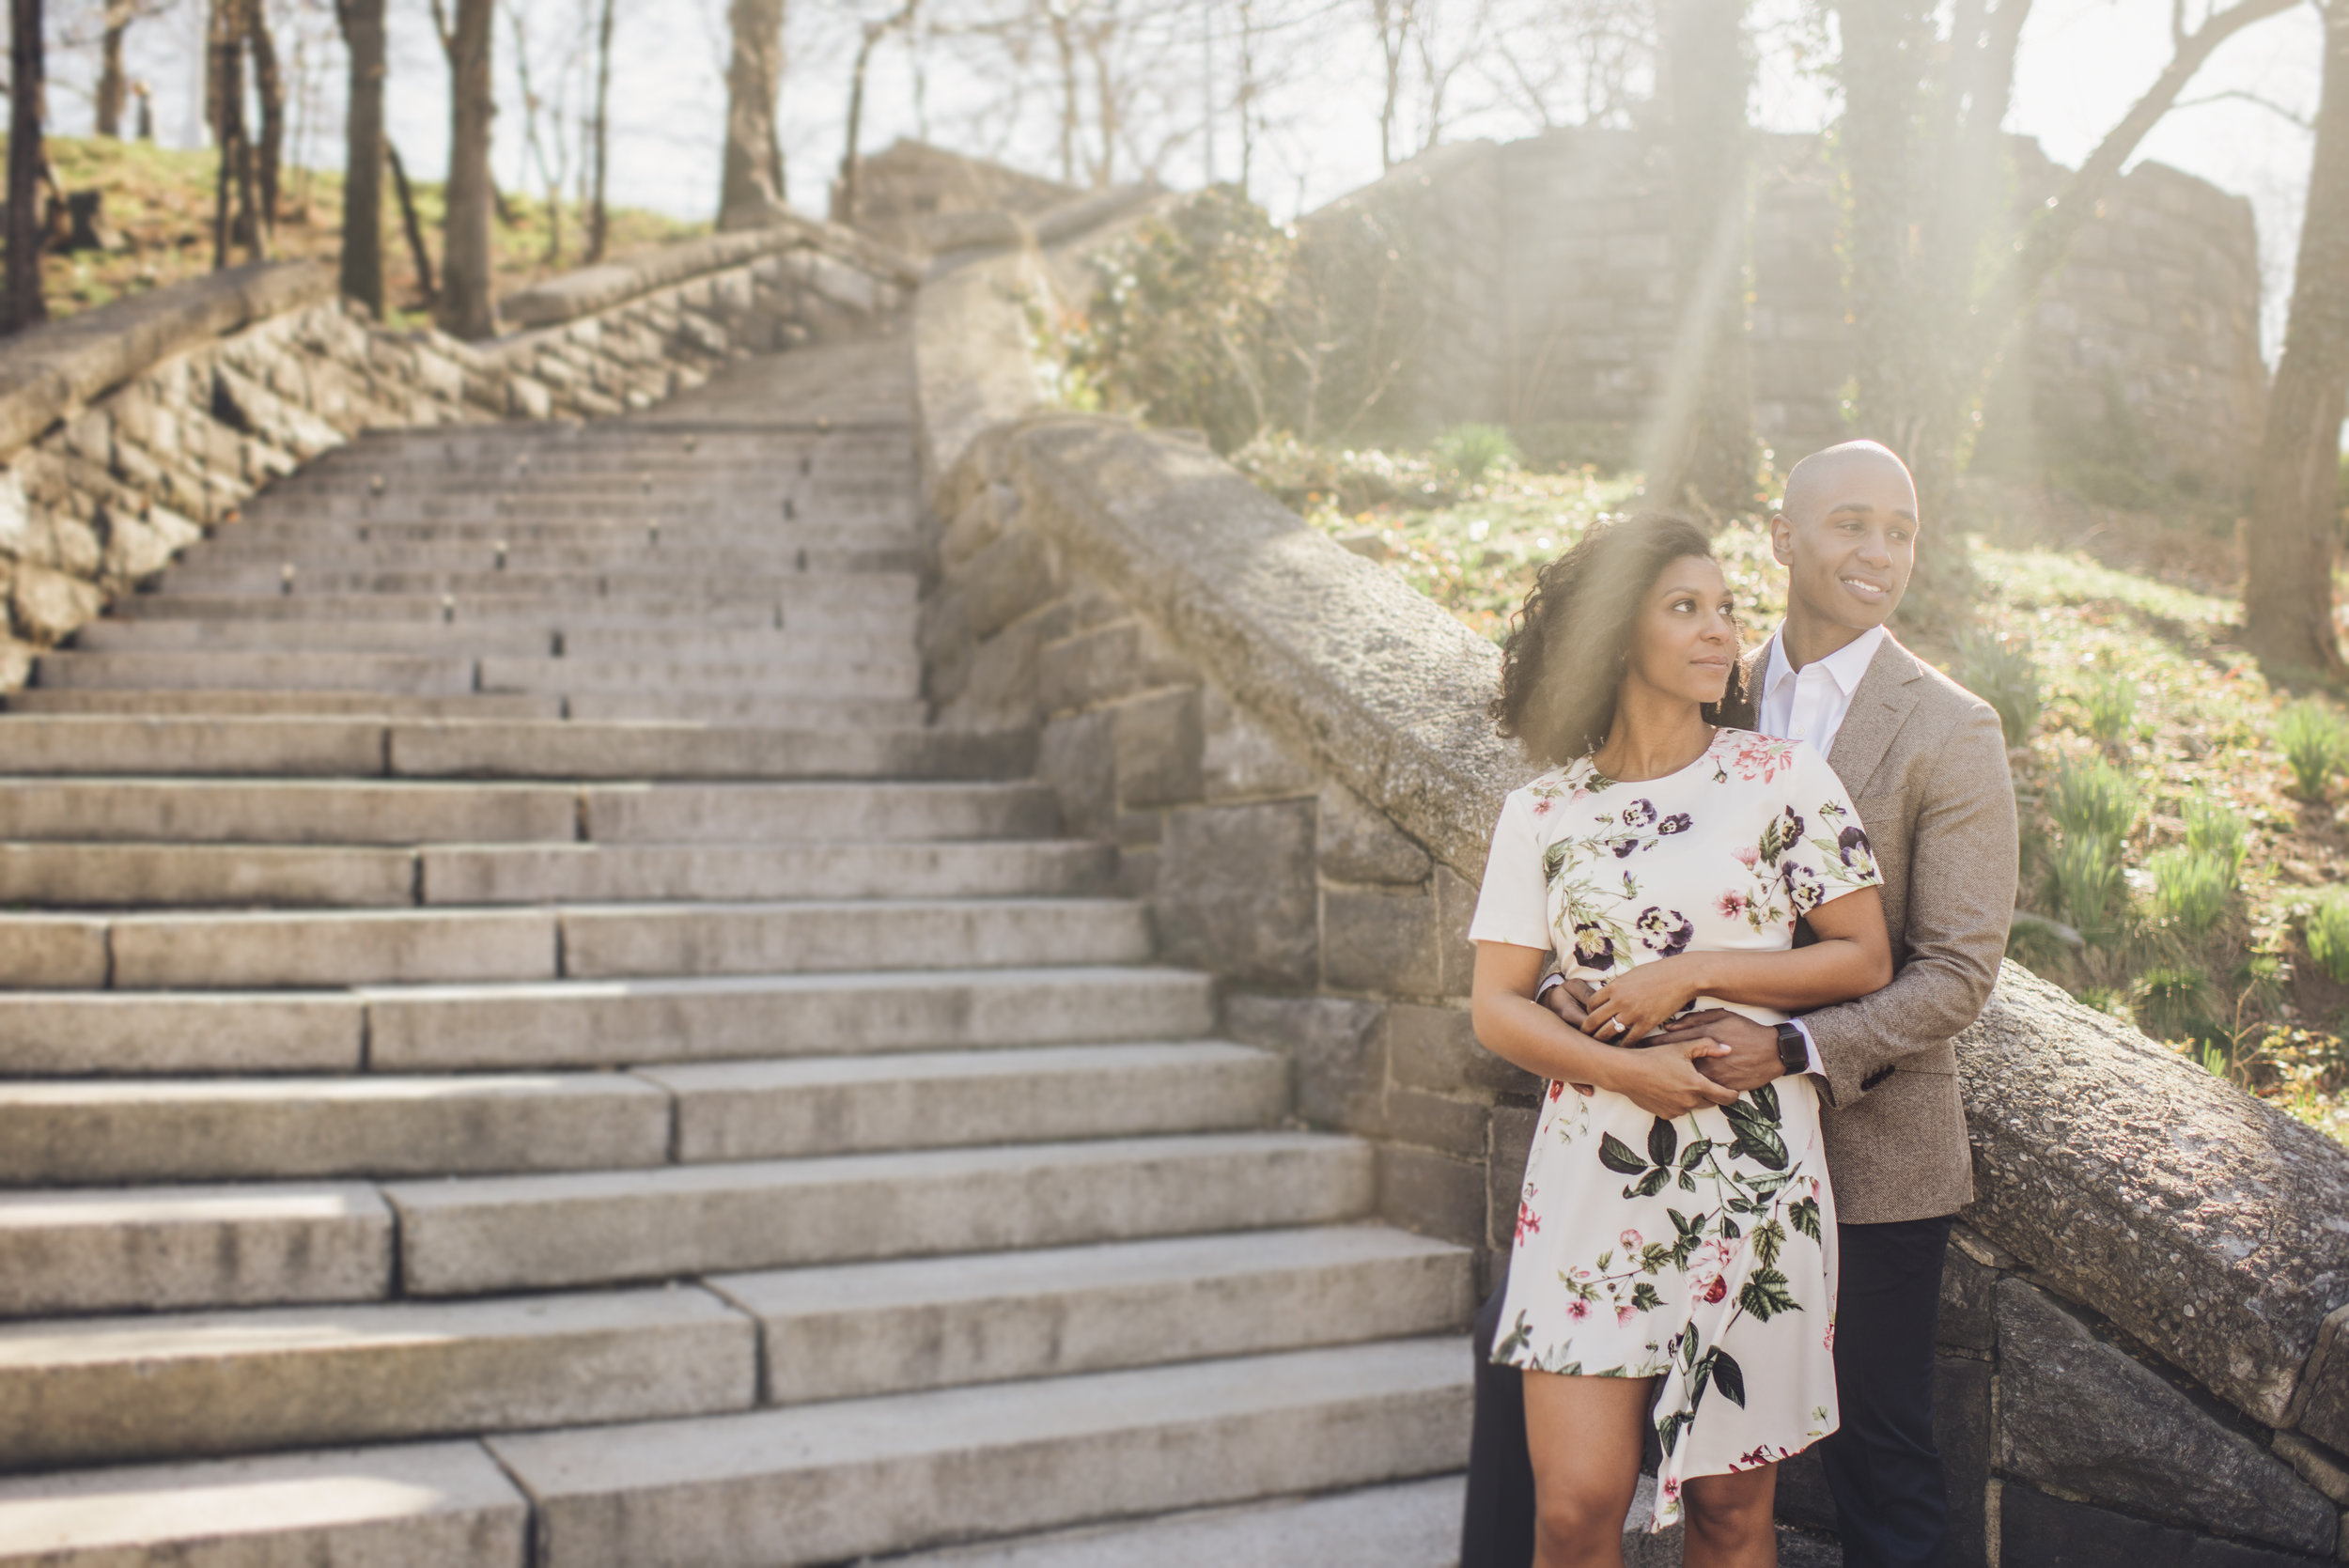 DANIELLE & BRANDON - HARLEM ENGAGEMENT SESSION - TWOTWENTY by CHI-CHI-121.jpg